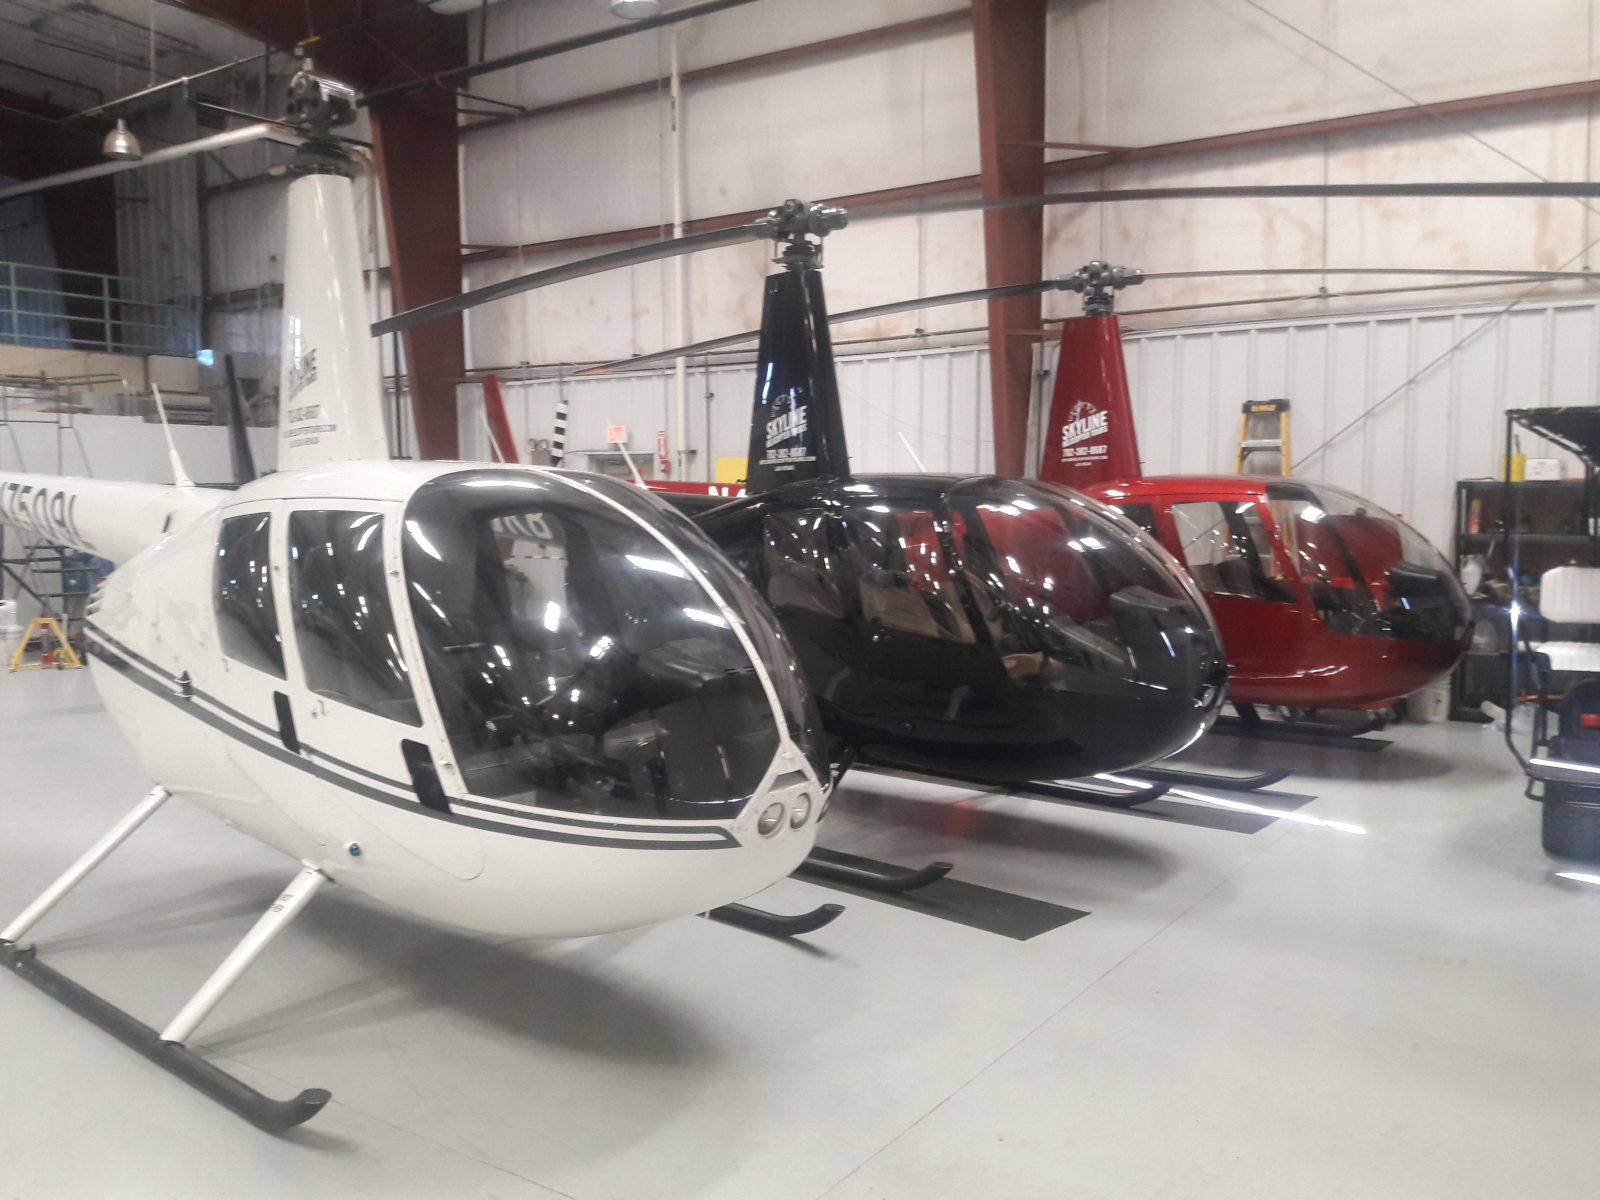 3 Helicopters, Skyline Helicopter Tours Las Vegas